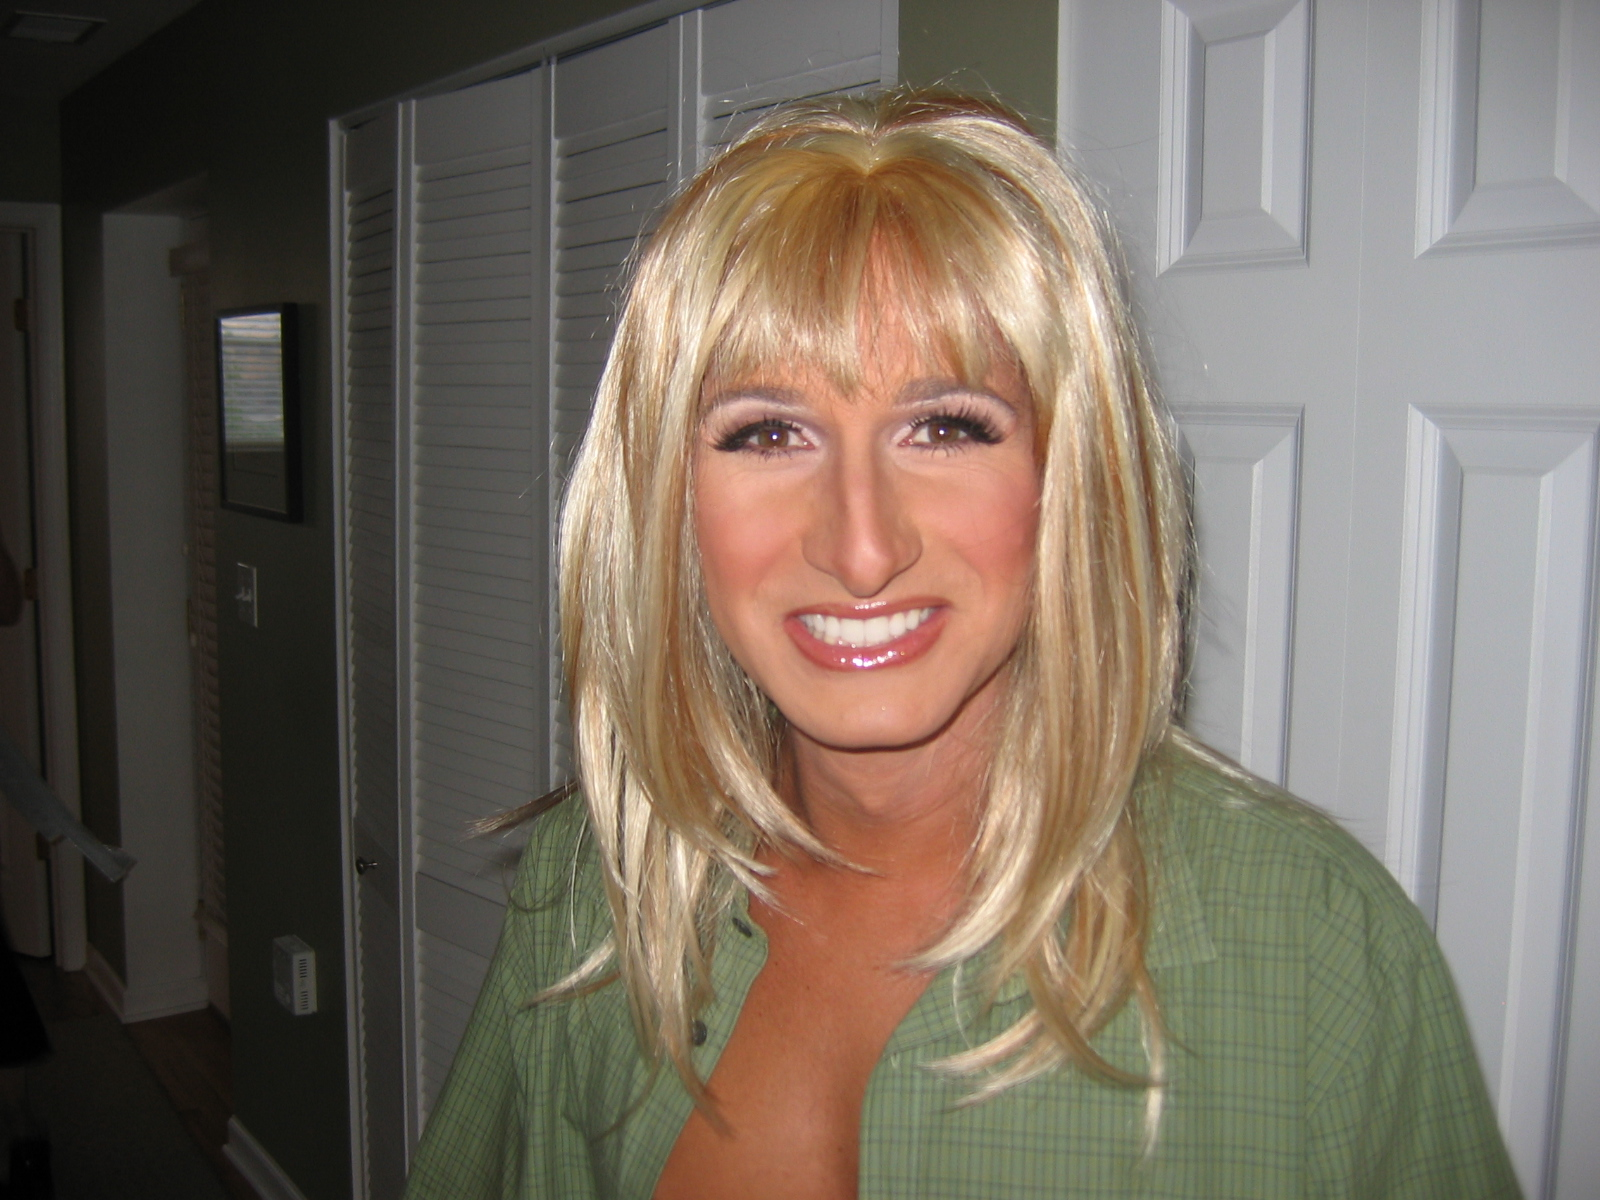 File:Flickr blonde wigged man crossdressing.jpg